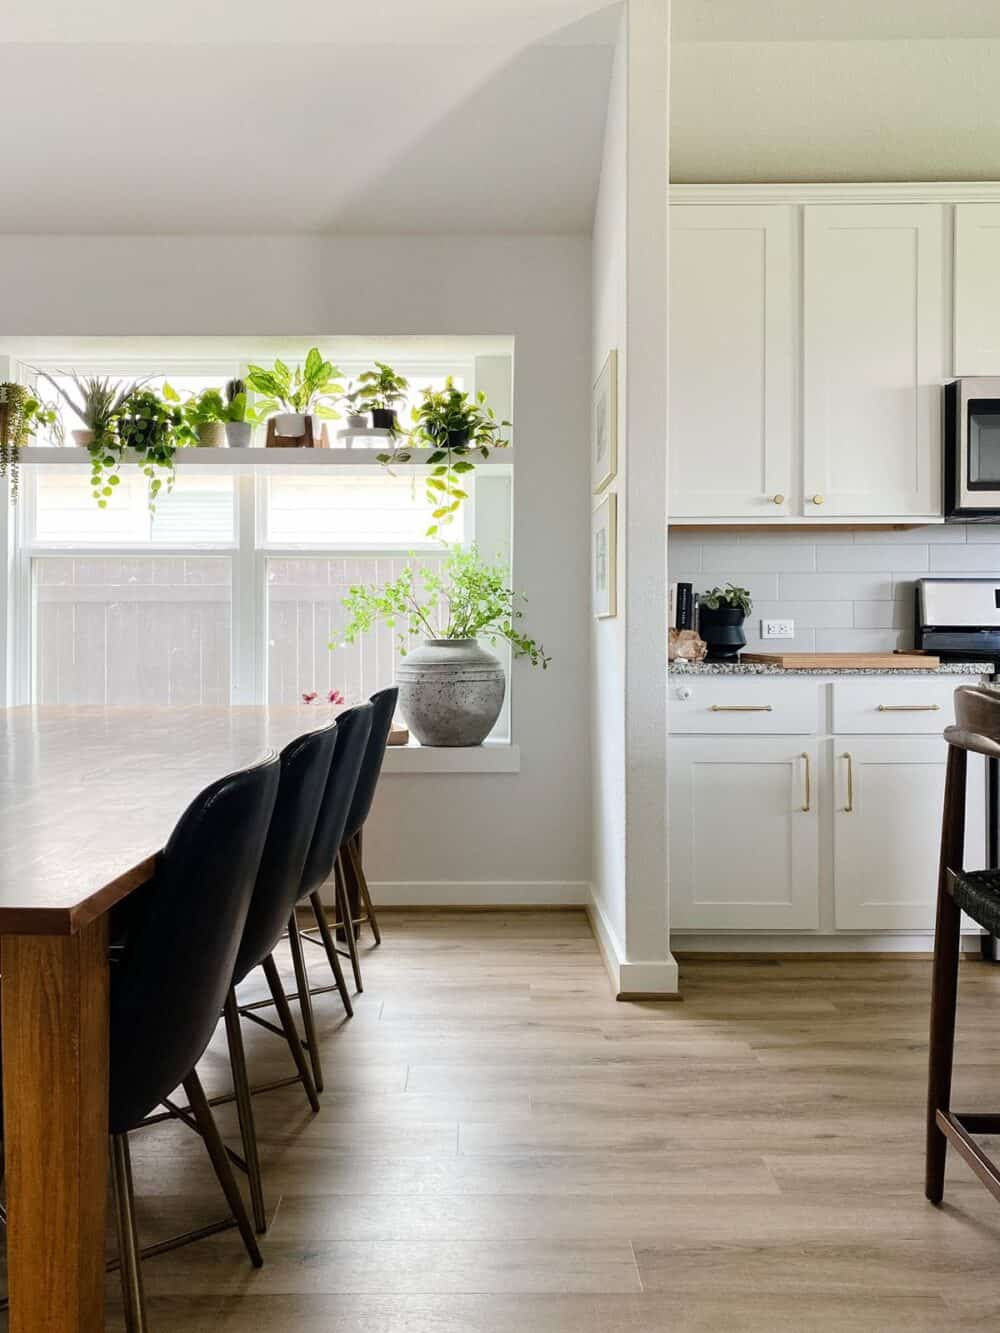 A bright, neutral kitchen and dining space